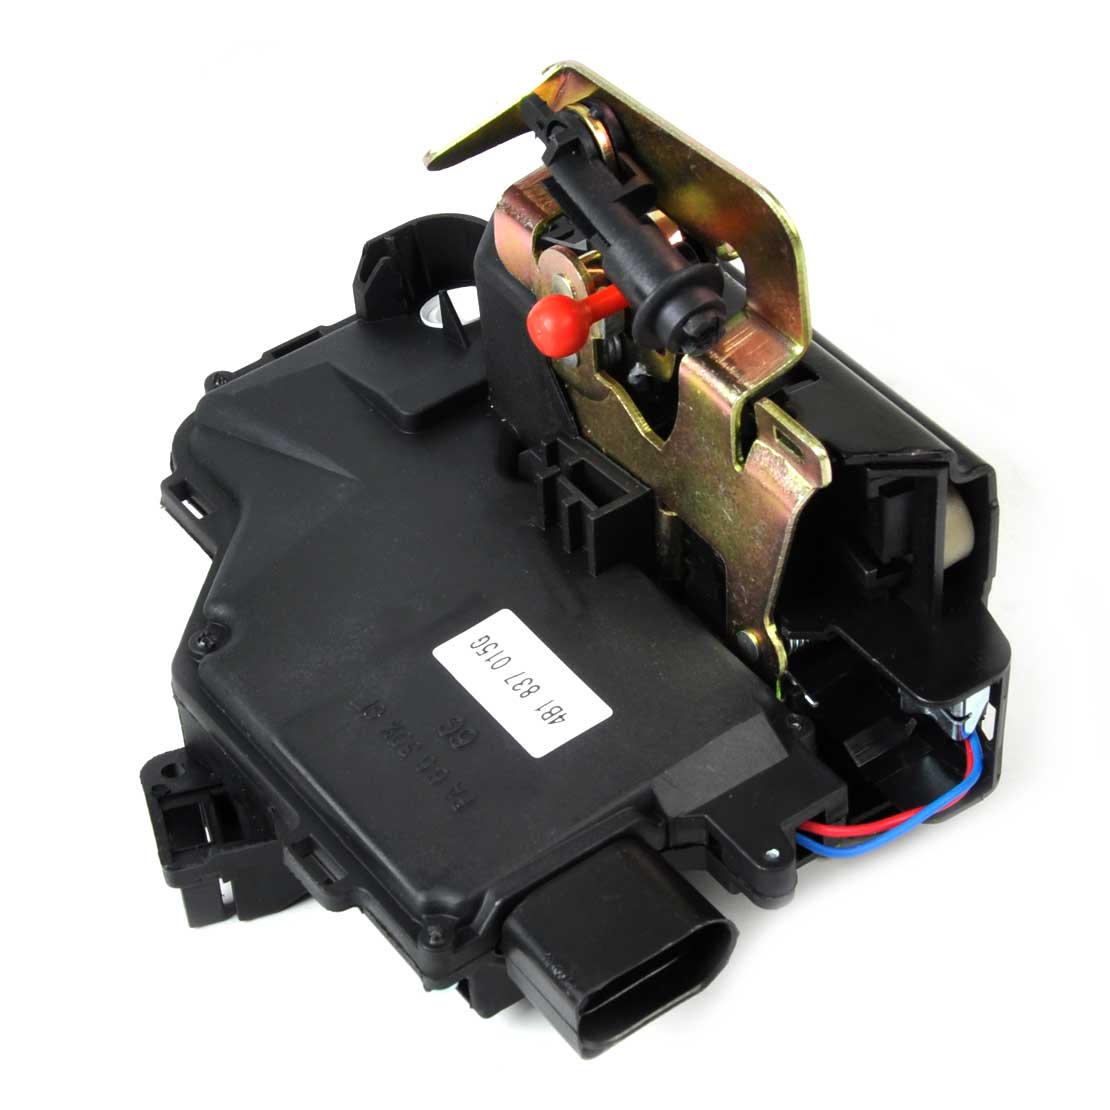 beler New 4B1 837 015 G Front Left Driver Door Lock for Audi A4 A6 C5 8E QUATRRO ALLROAD 2001 2002 2003 2004 2005 4B1837015H actuator for k04 53049880028 077145703p 077145703pv turbo turbochager for audi rs6 c5 left side 2002 2004 year 450hp bcy biturbo